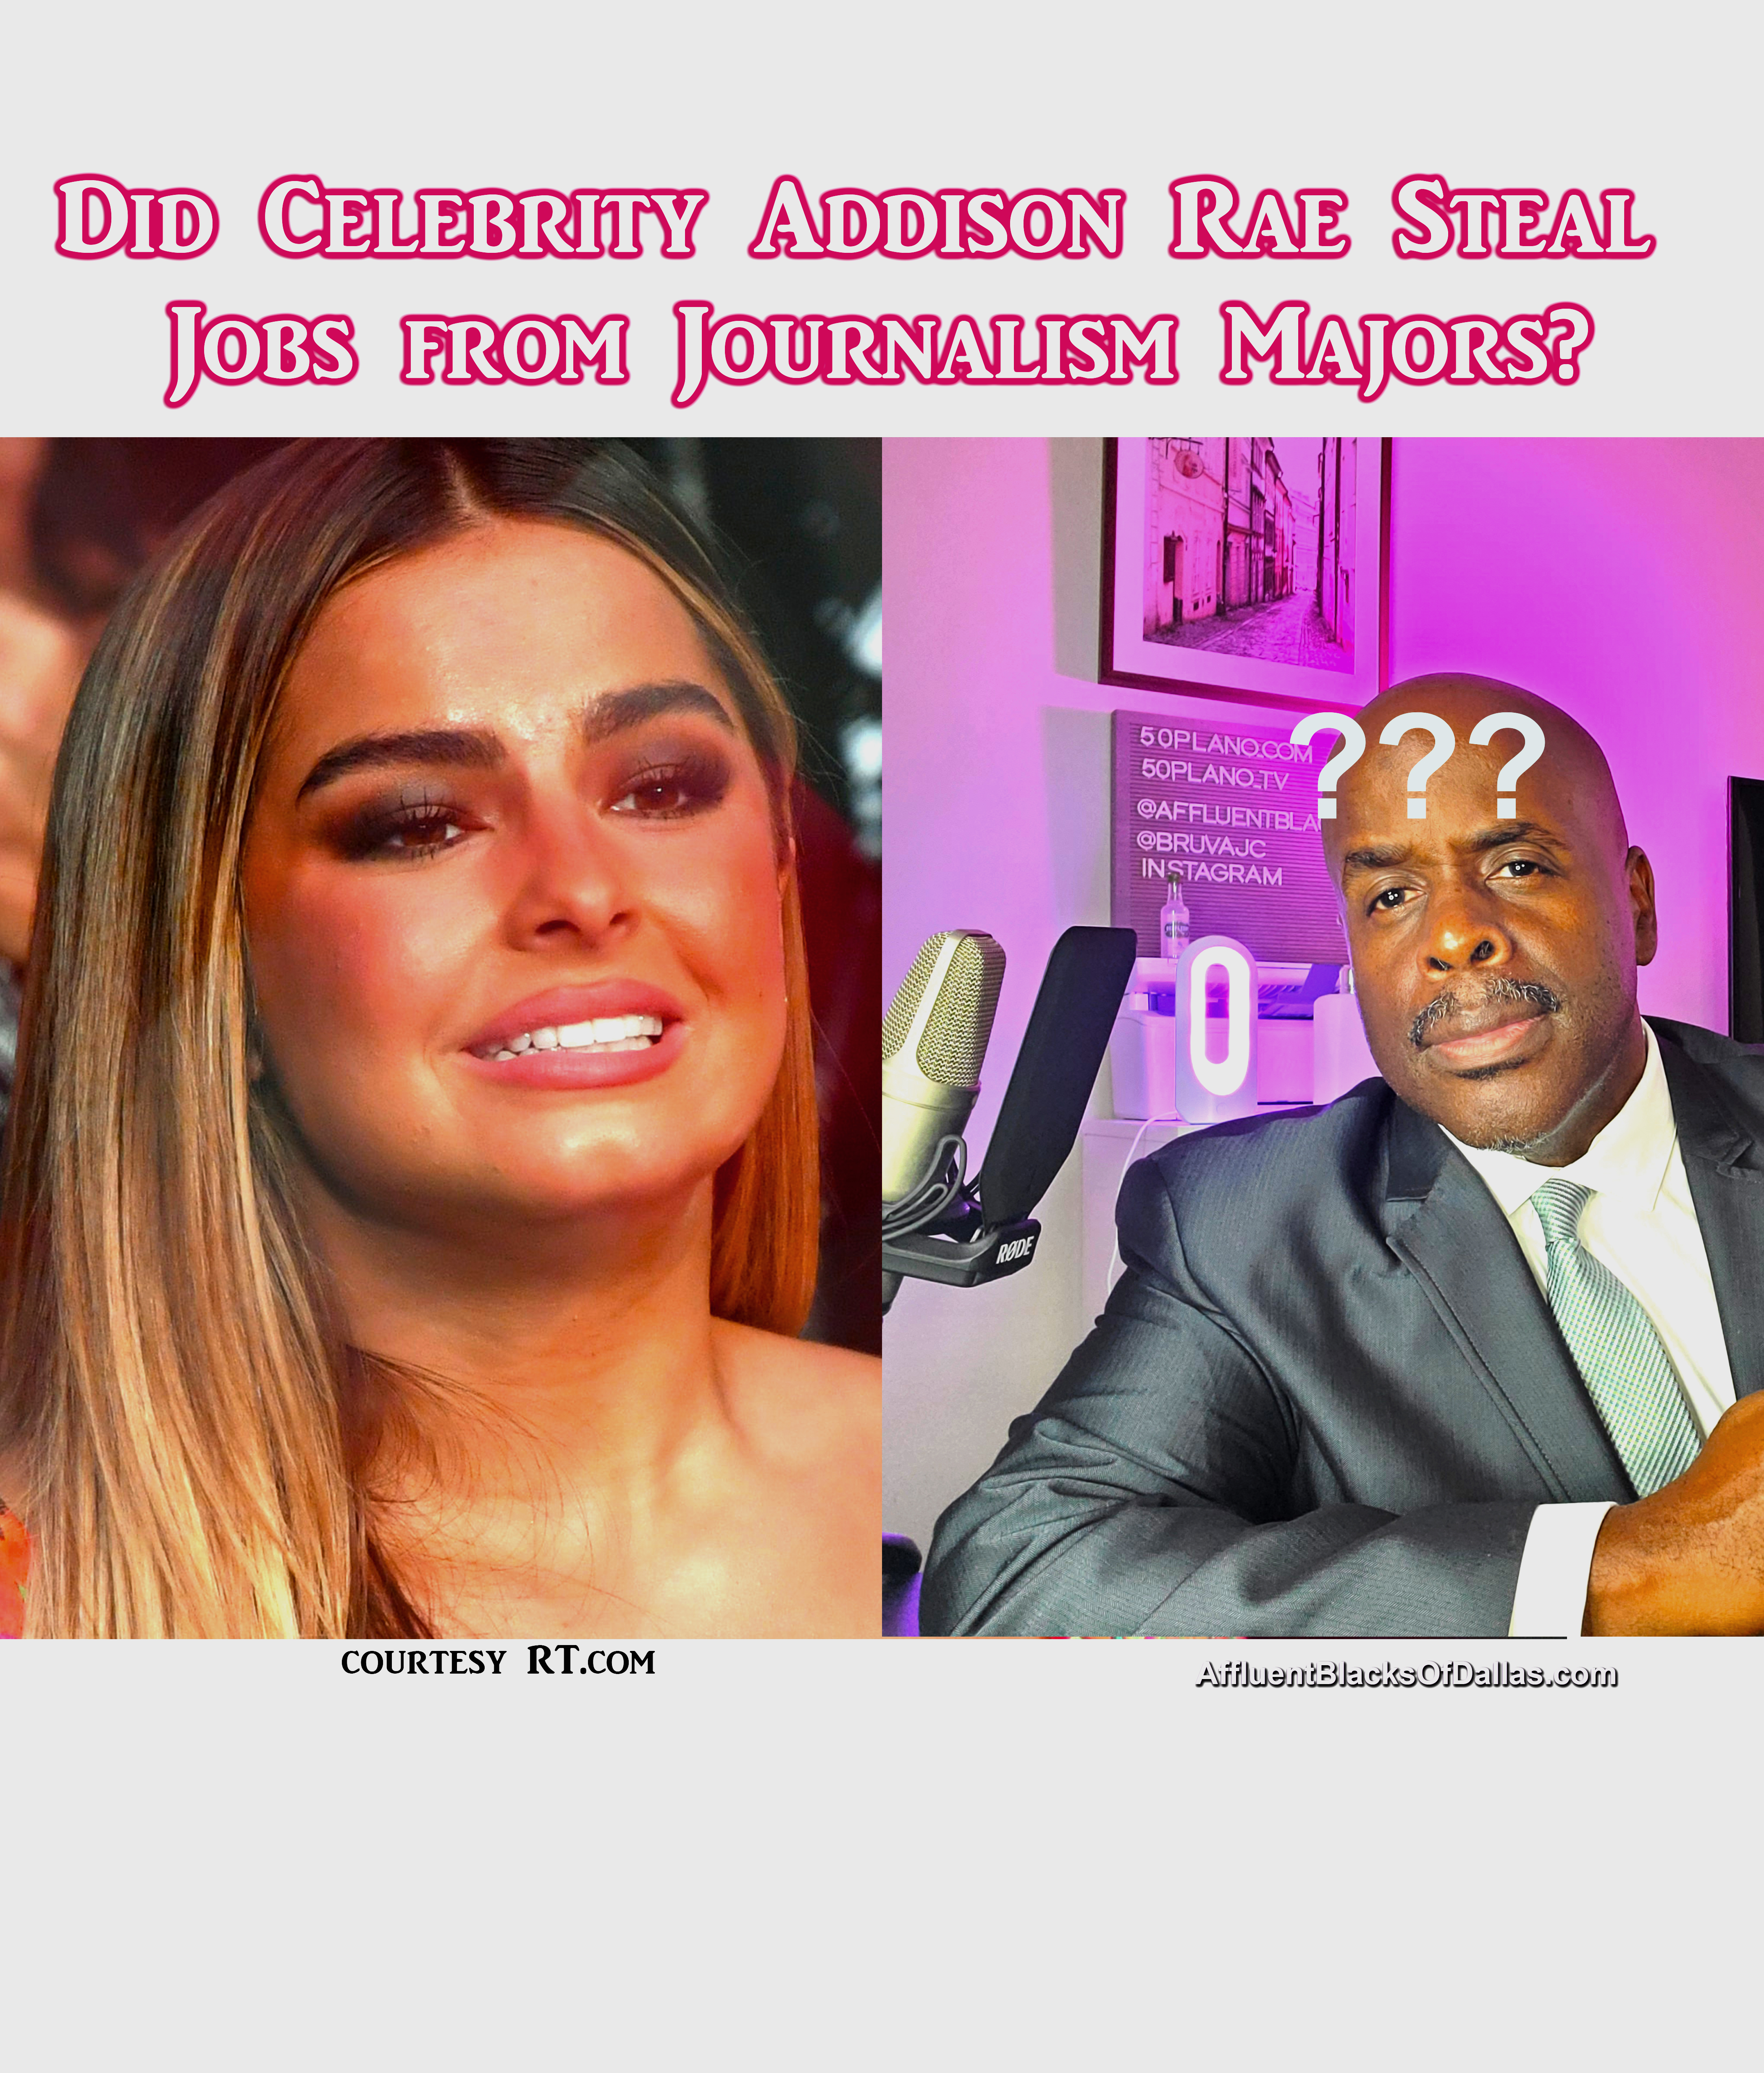 Did Celebrity Addison Rae Steal Job from Journalism Majors? Stop picking struggle majors!!